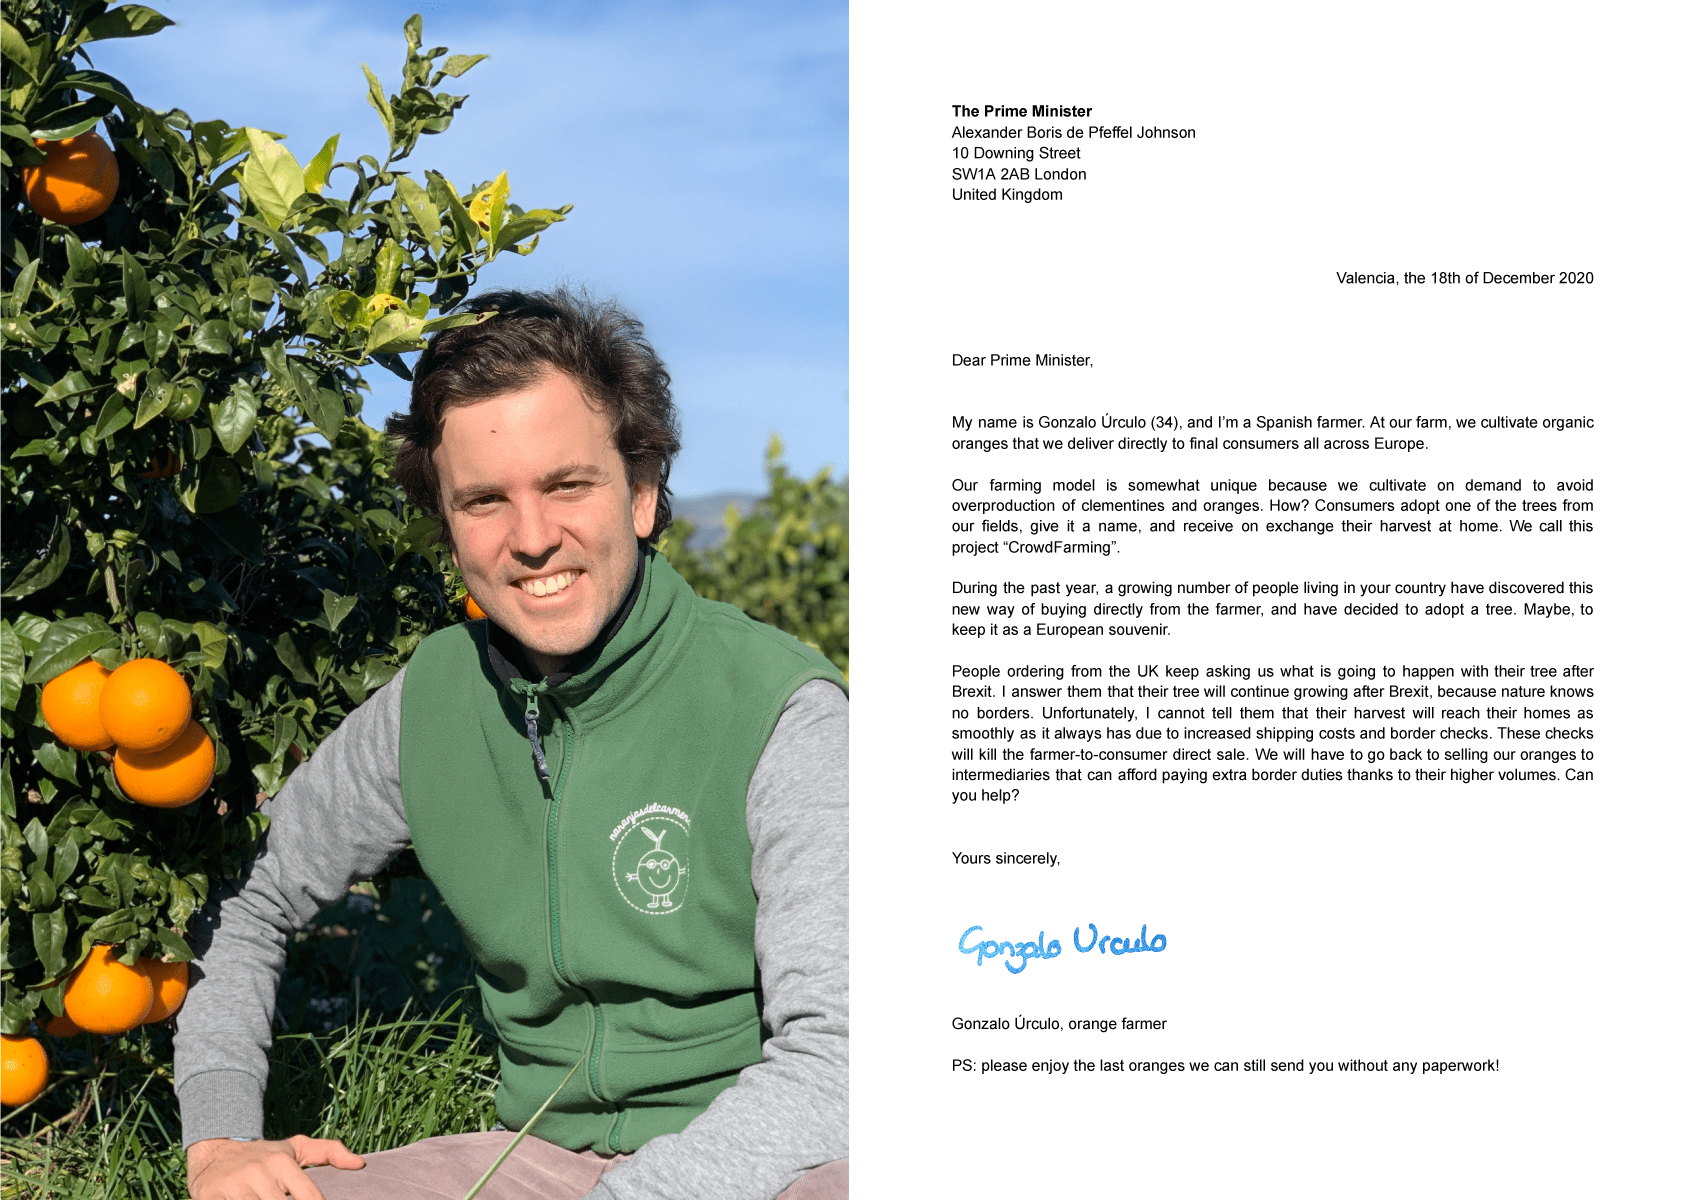 The farmer Gonzalo Úrculo in a field of orange trees and a letter to the British Prime Minister